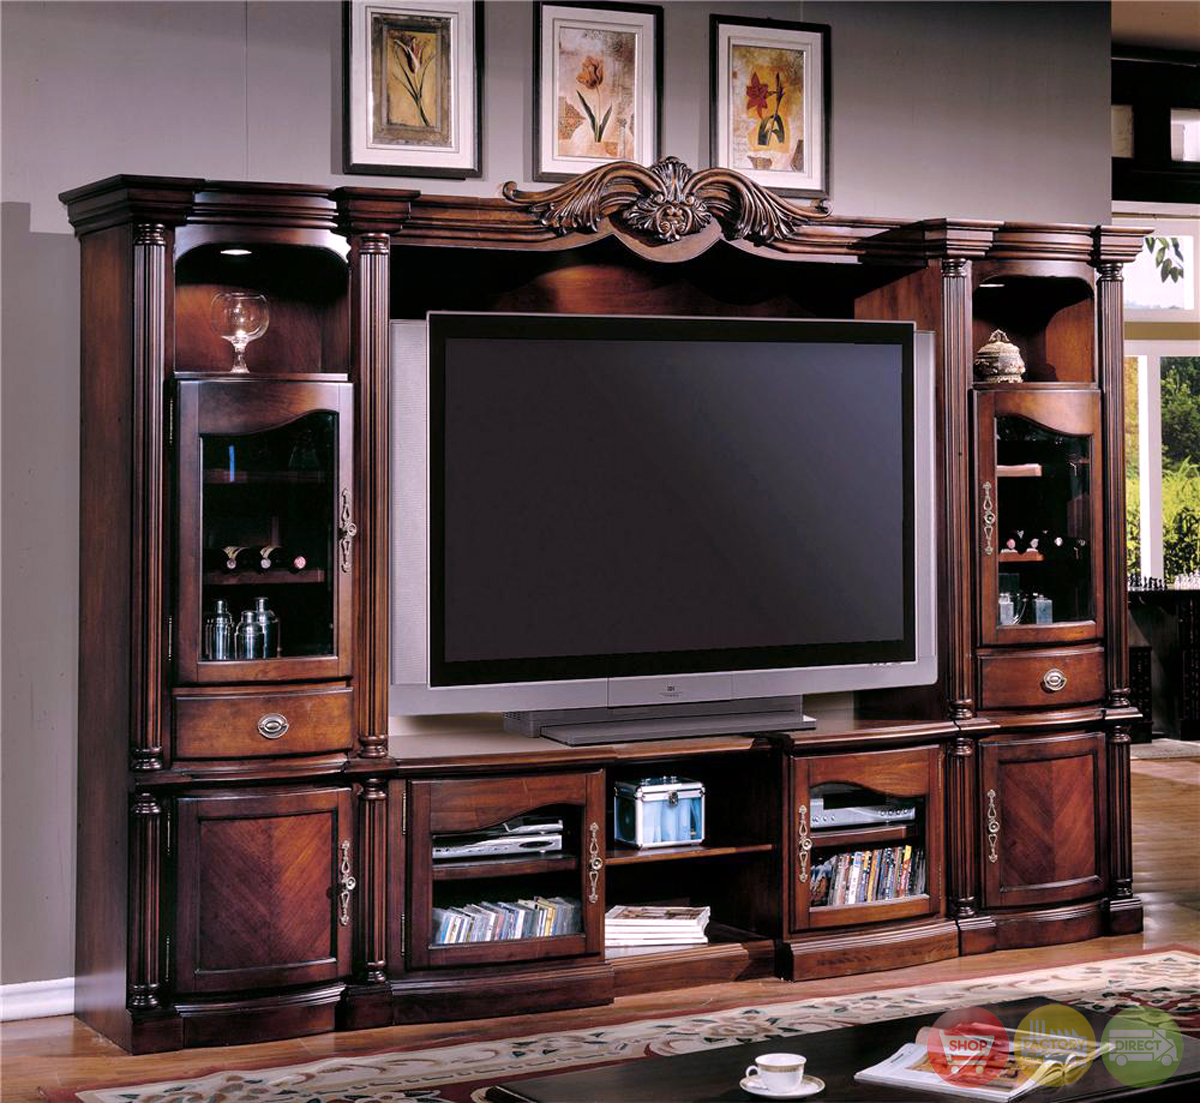 Large tv wall units pictures to pin on pinterest pinsdaddy for Large tv wall units